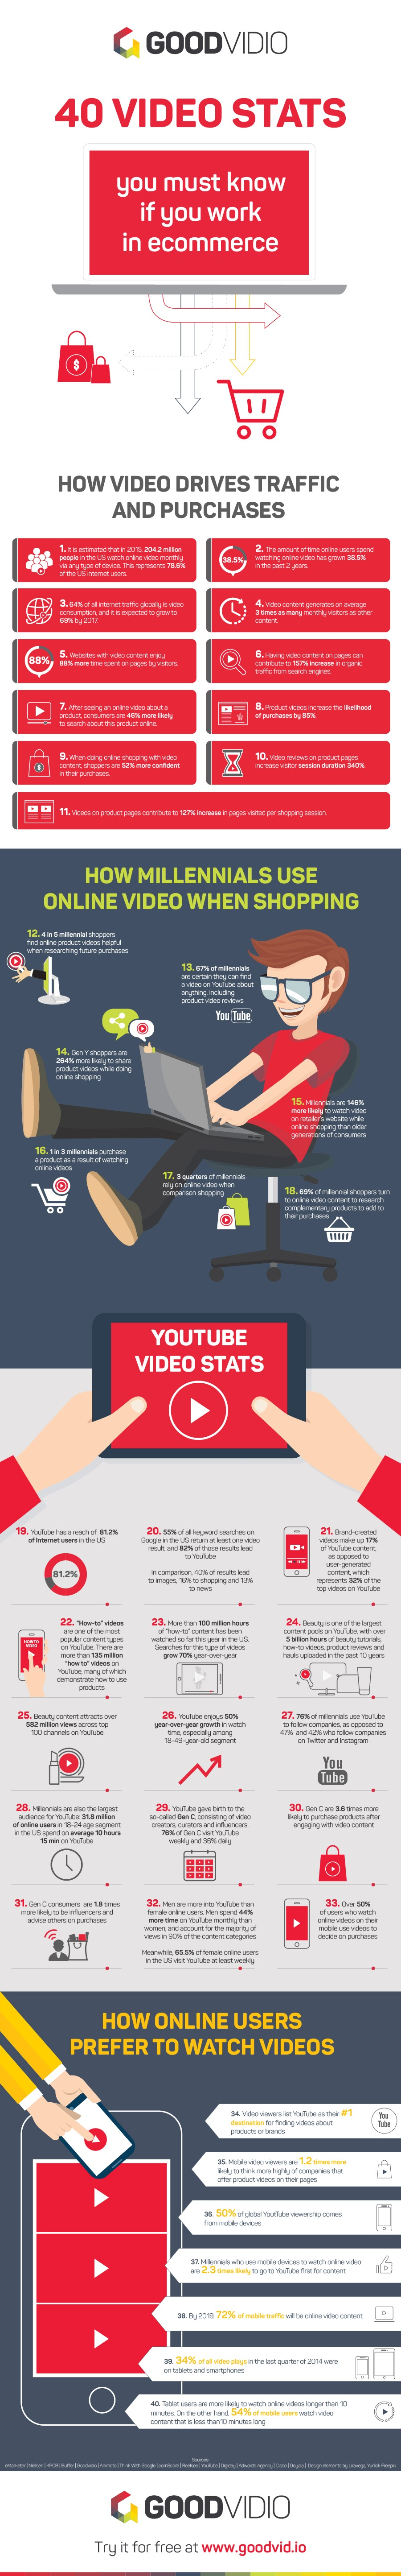 40 Video Stats You Must Know if You Work in eCommerce - #Infographic